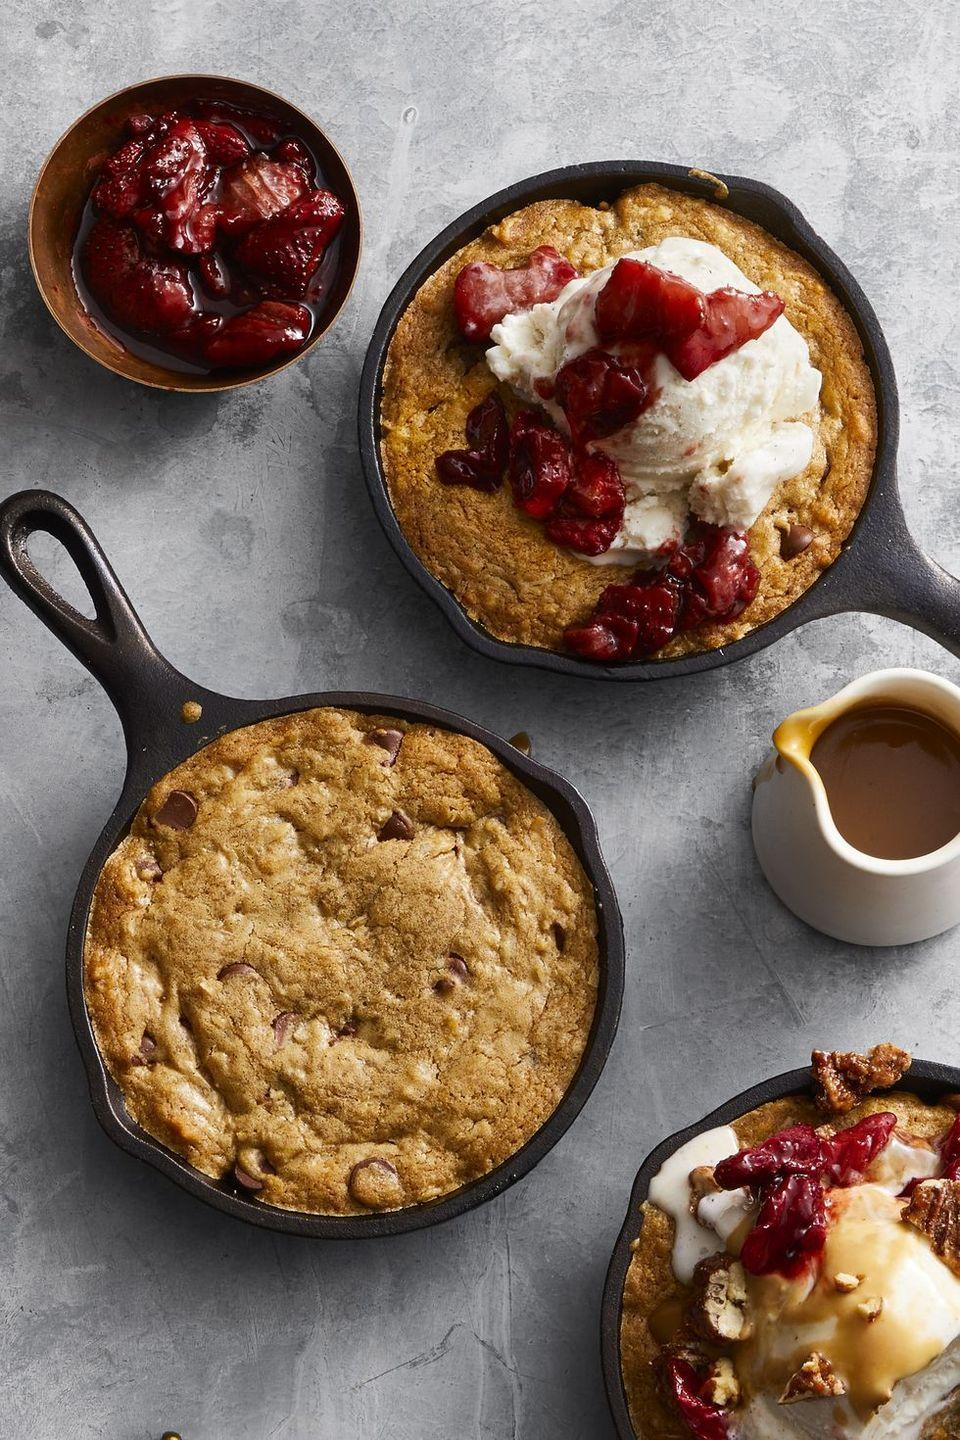 "<p>Turn the dessert course into an interactive experience — complete with a customizable skillet cookie station! — and the chances of your guest crashing on your couch (hello, turkey coma) will dramatically decrease. </p><p><em><a href=""https://www.goodhousekeeping.com/food-recipes/dessert/a47671/skillet-cookie-sundaes-recipe/"" rel=""nofollow noopener"" target=""_blank"" data-ylk=""slk:Get the recipe for Skillet Cookie Sundaes »"" class=""link rapid-noclick-resp"">Get the recipe for Skillet Cookie Sundaes »</a></em></p>"